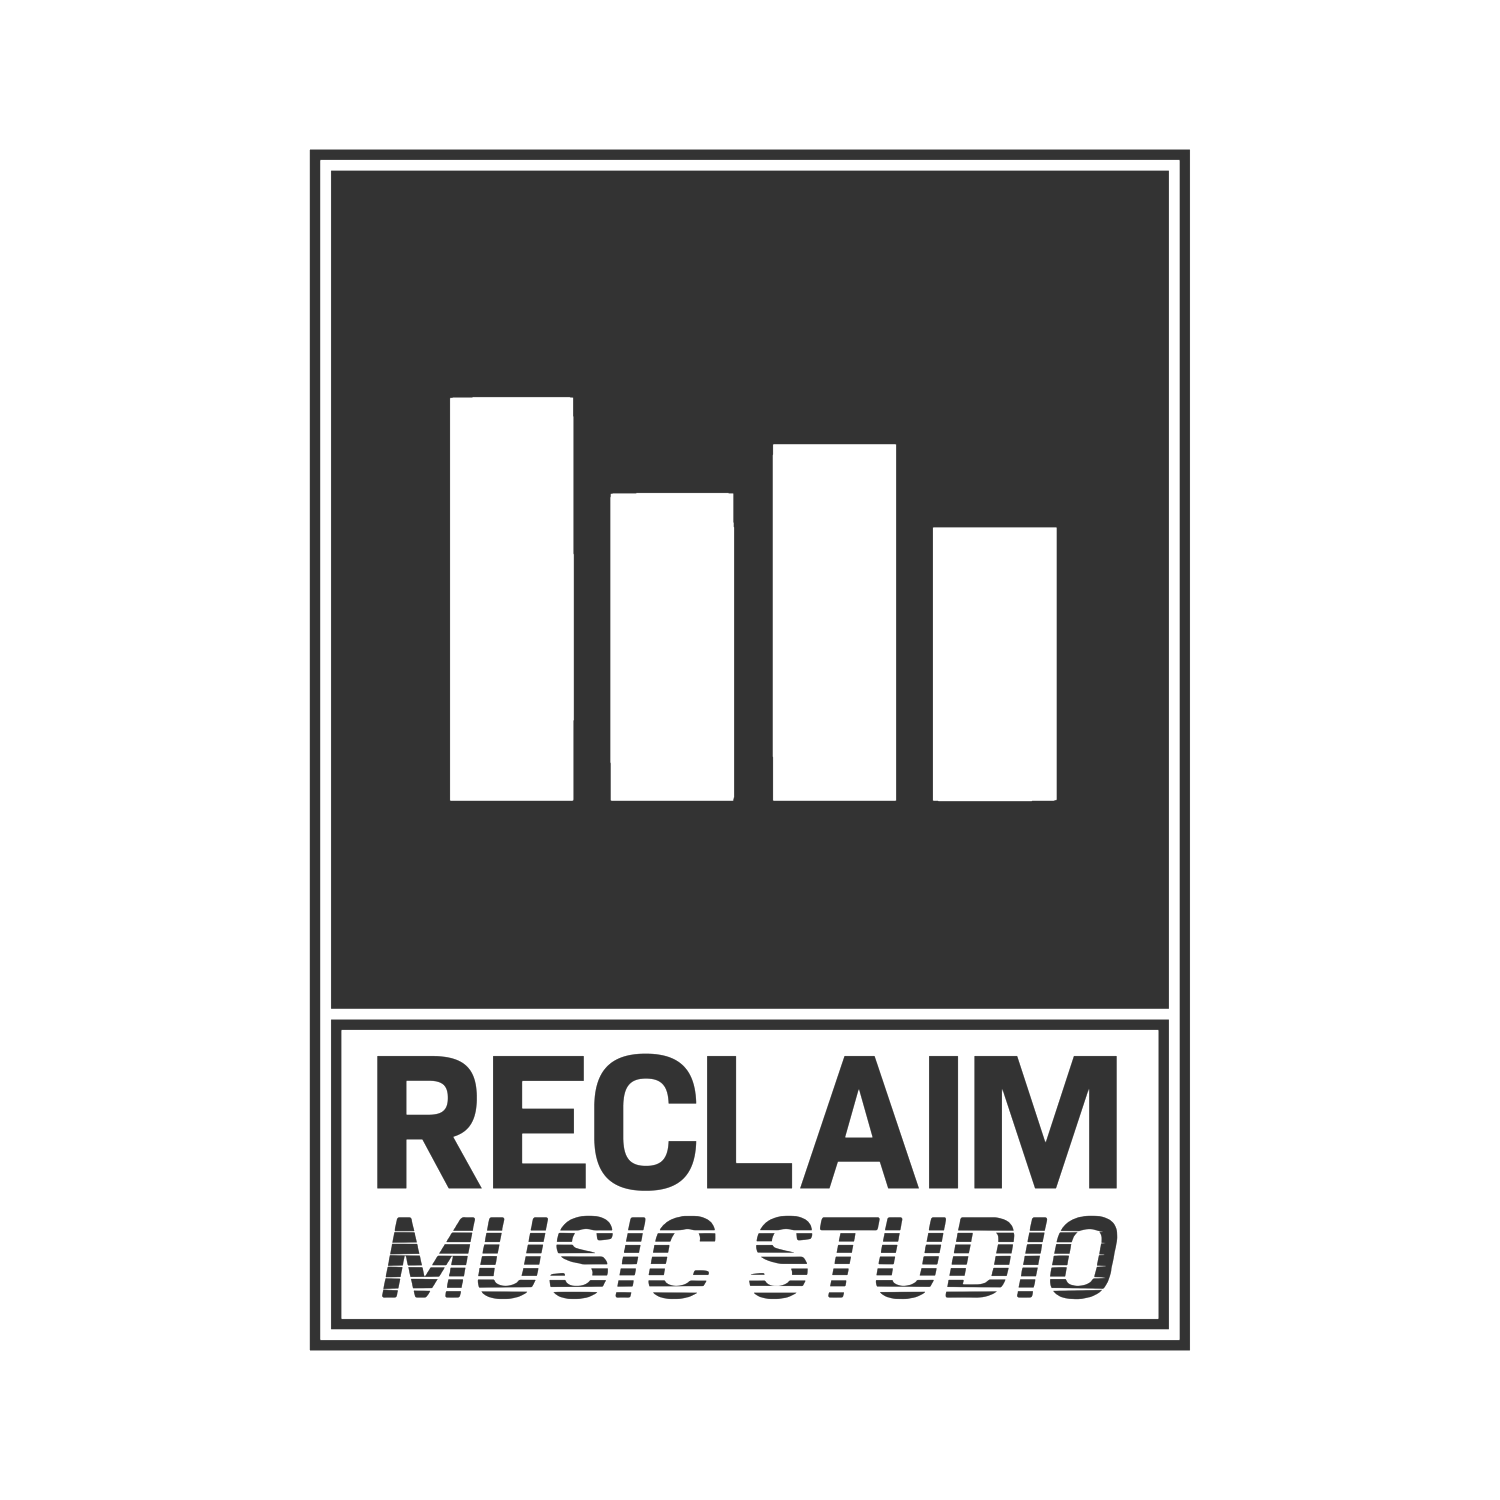 Reclaim Studio